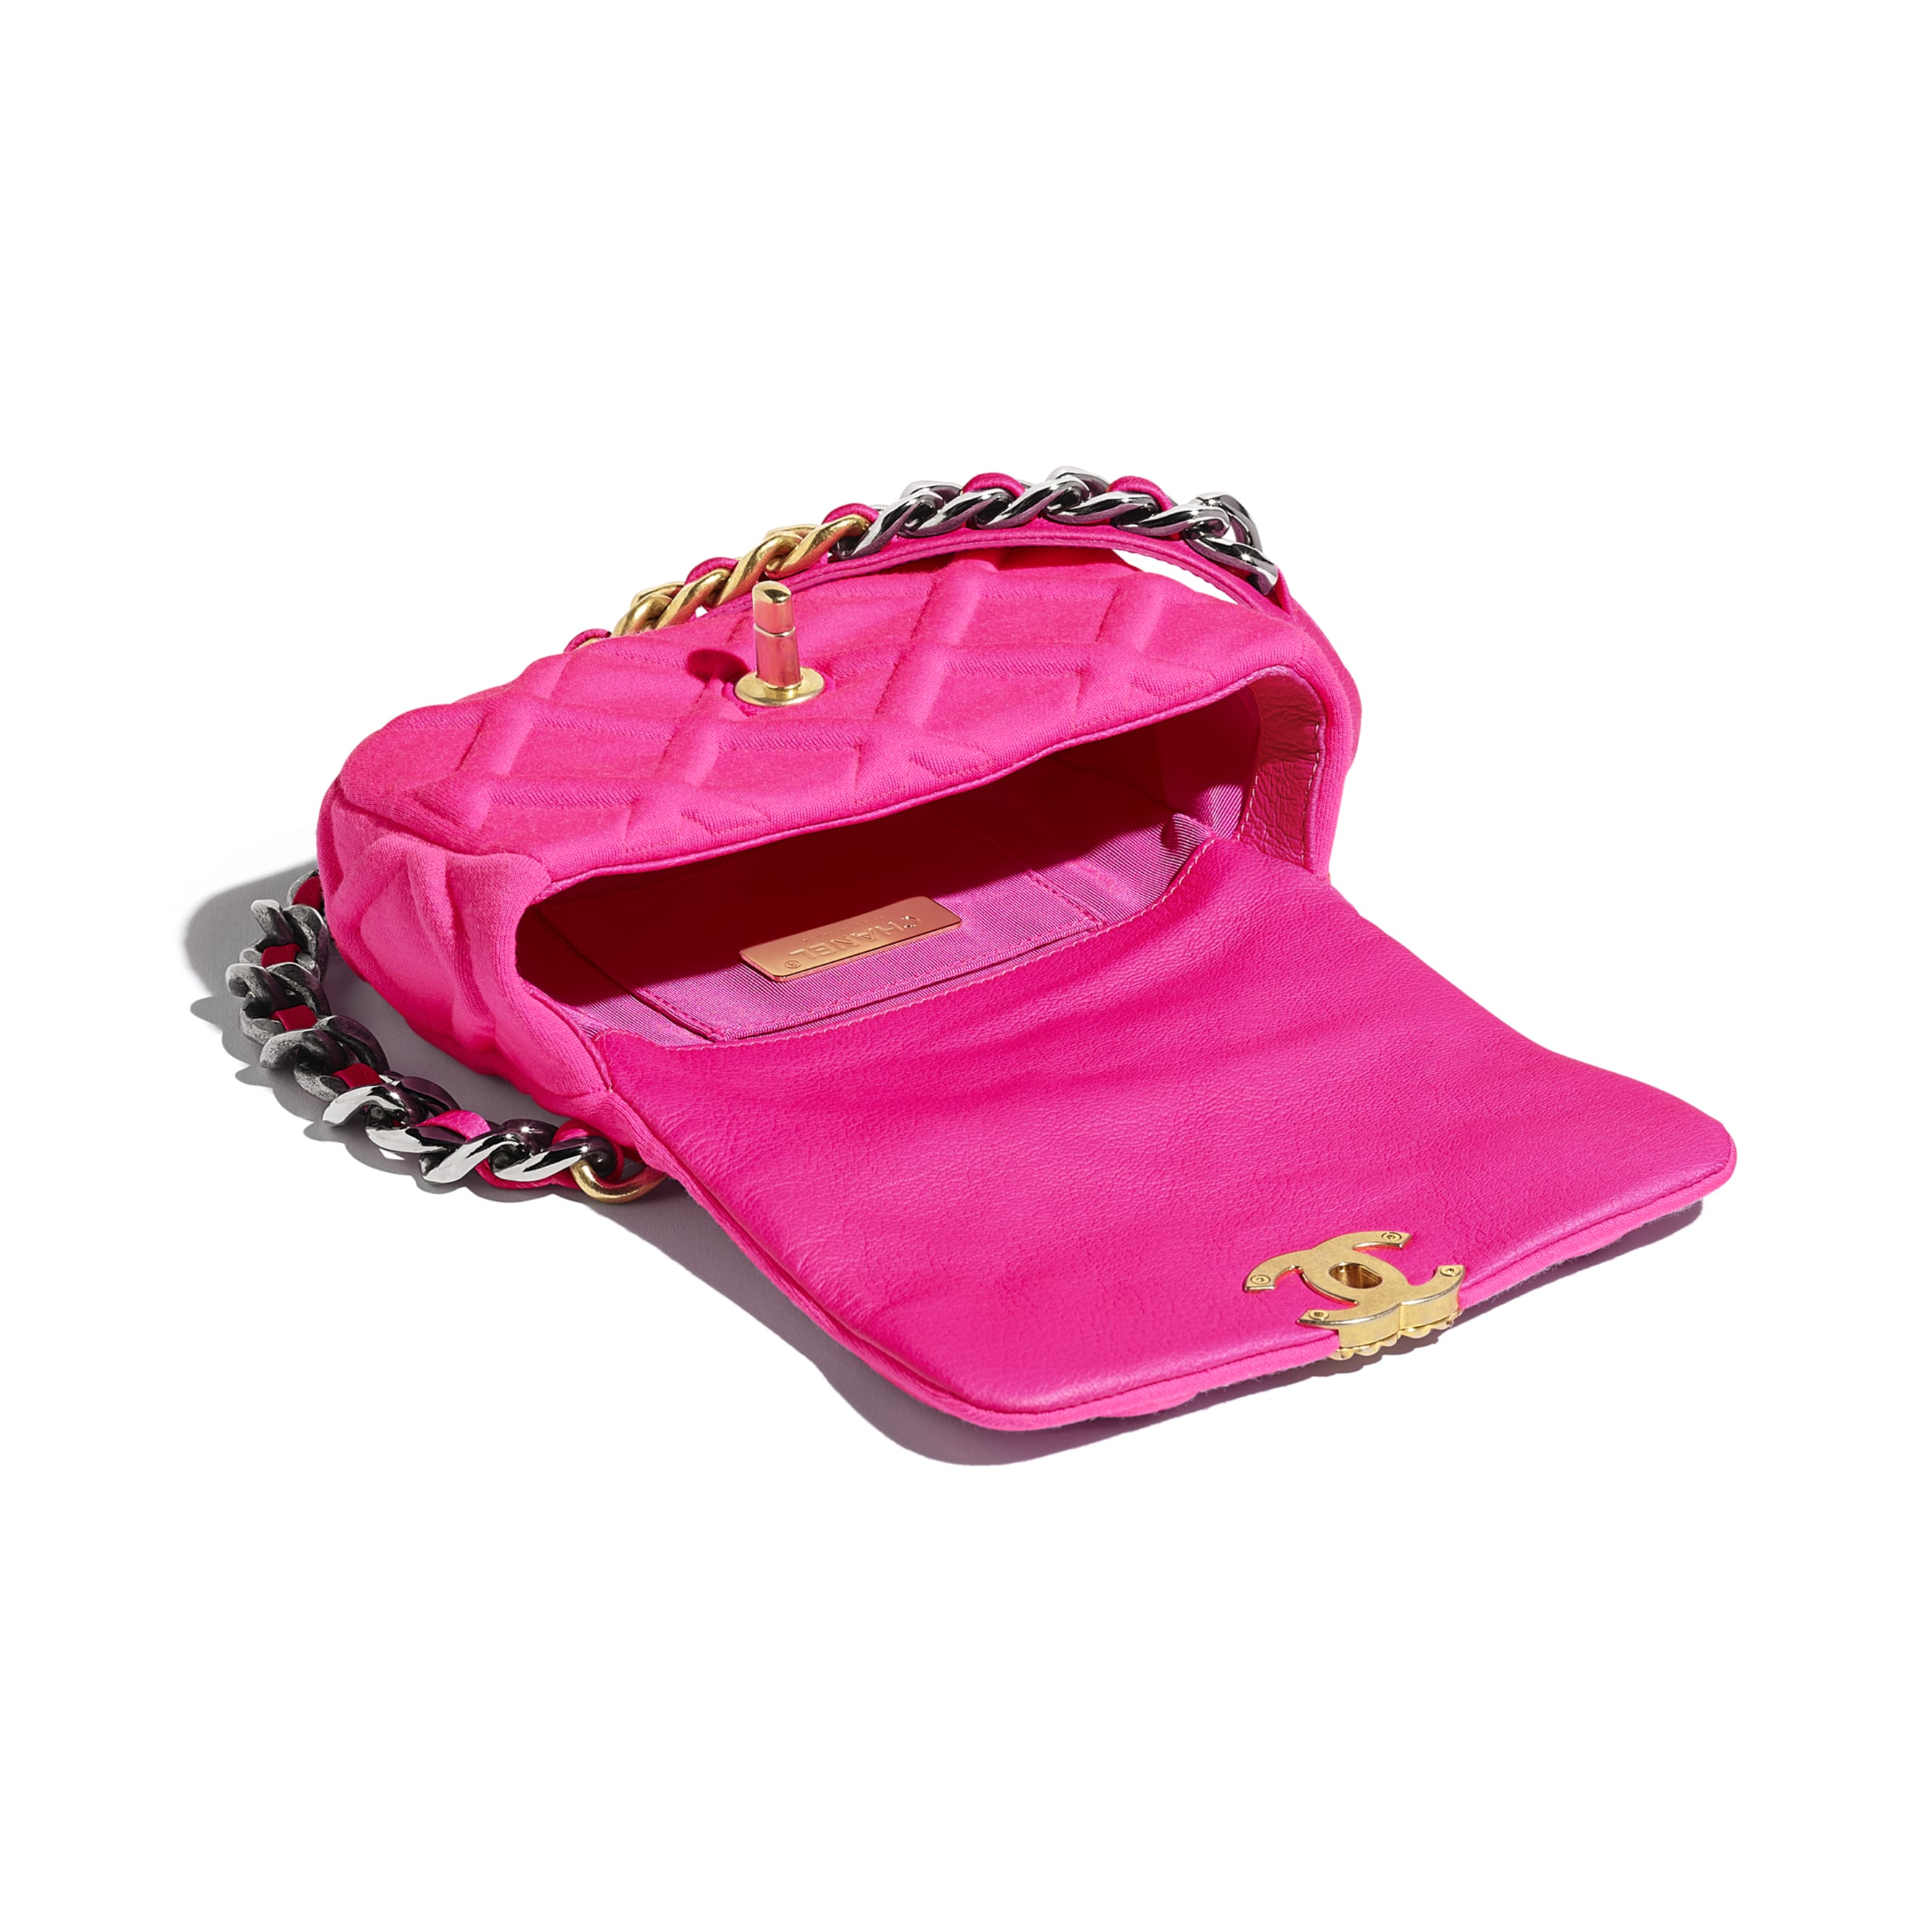 CHANEL 19 Waist Bag - Fuchsia - Jersey, Gold-Tone, Silver-Tone & Ruthenium-Finish Metal - Other view - see standard sized version